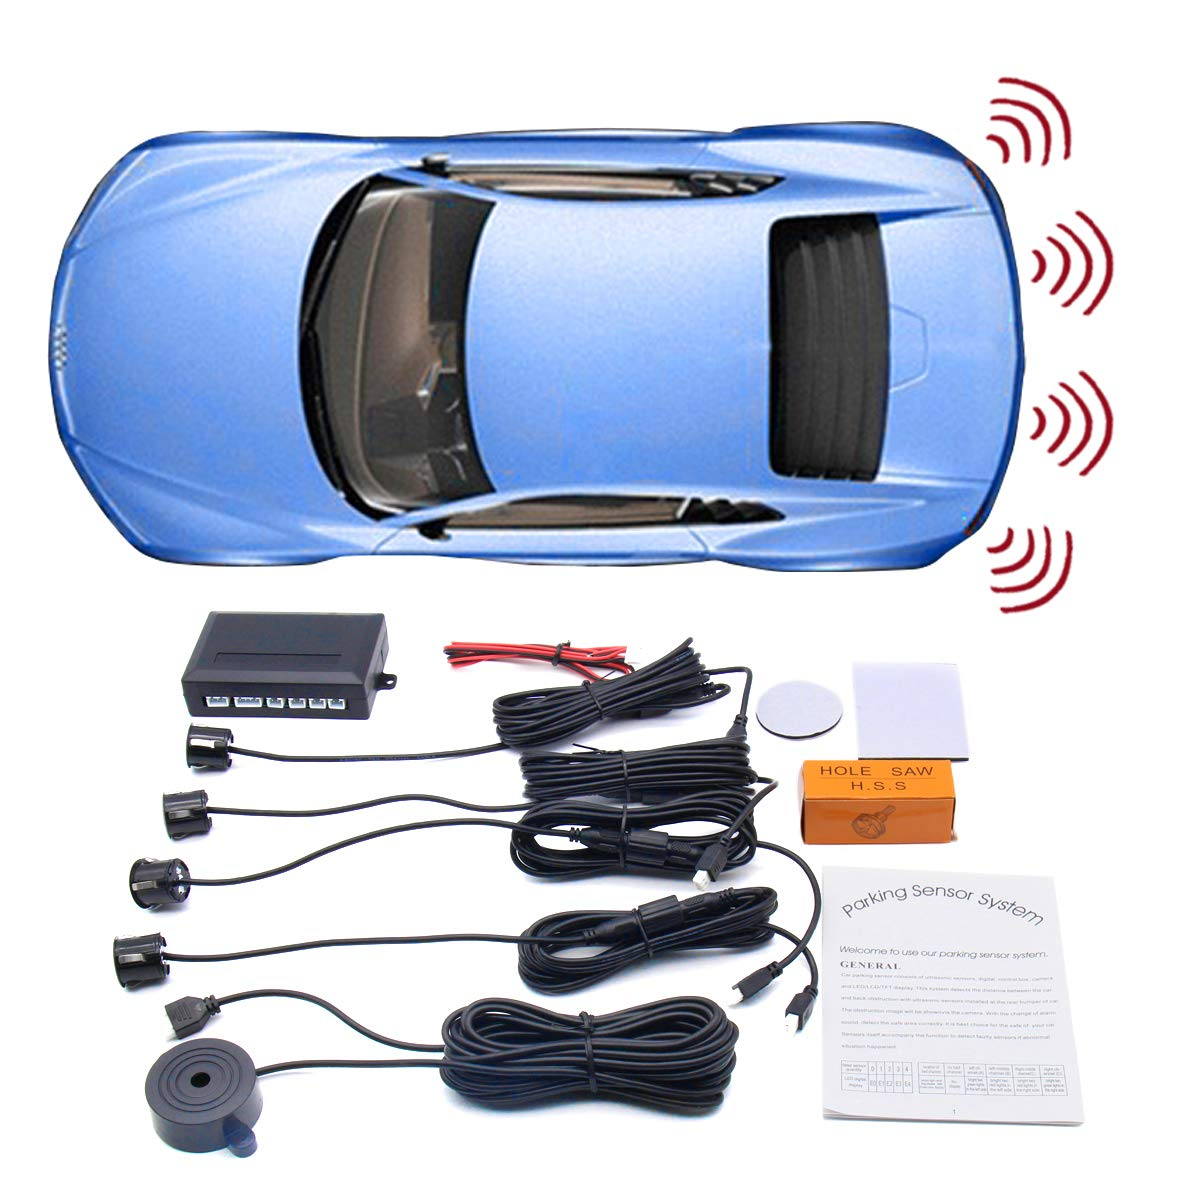 WINAUTO Car Backup Radar Sound Alert + 4 Parking Sensors, Reversing Sensor Kit with Beeping System - Black